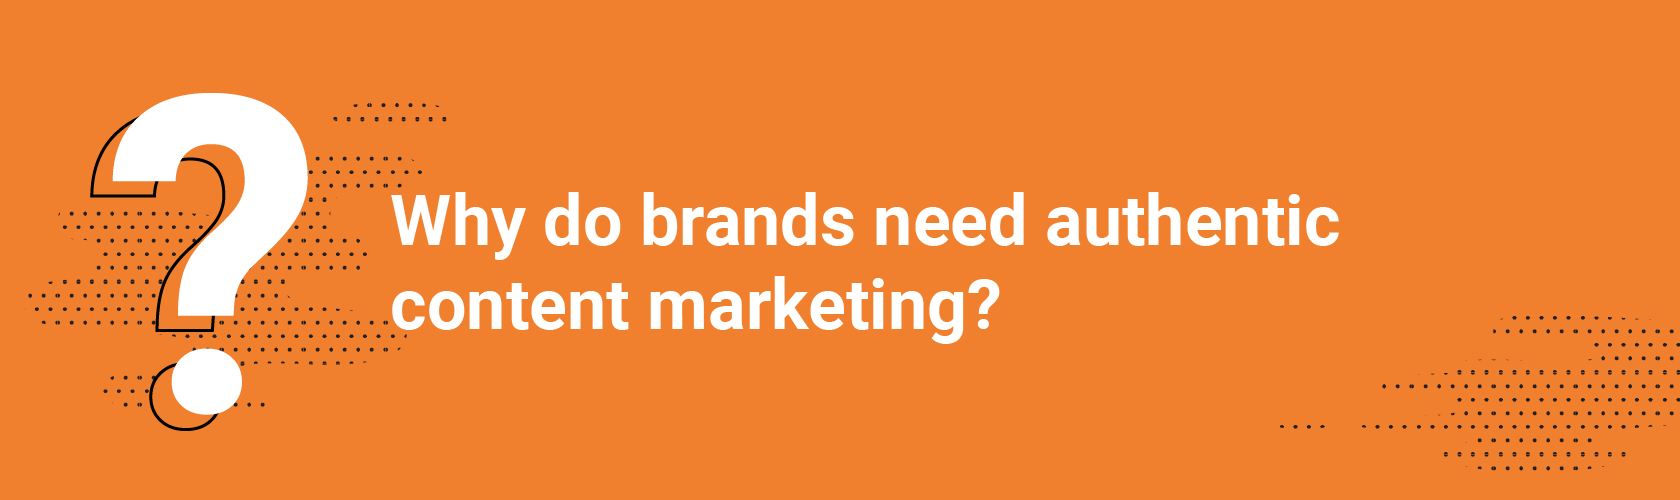 Why do brands need authentic content marketing?